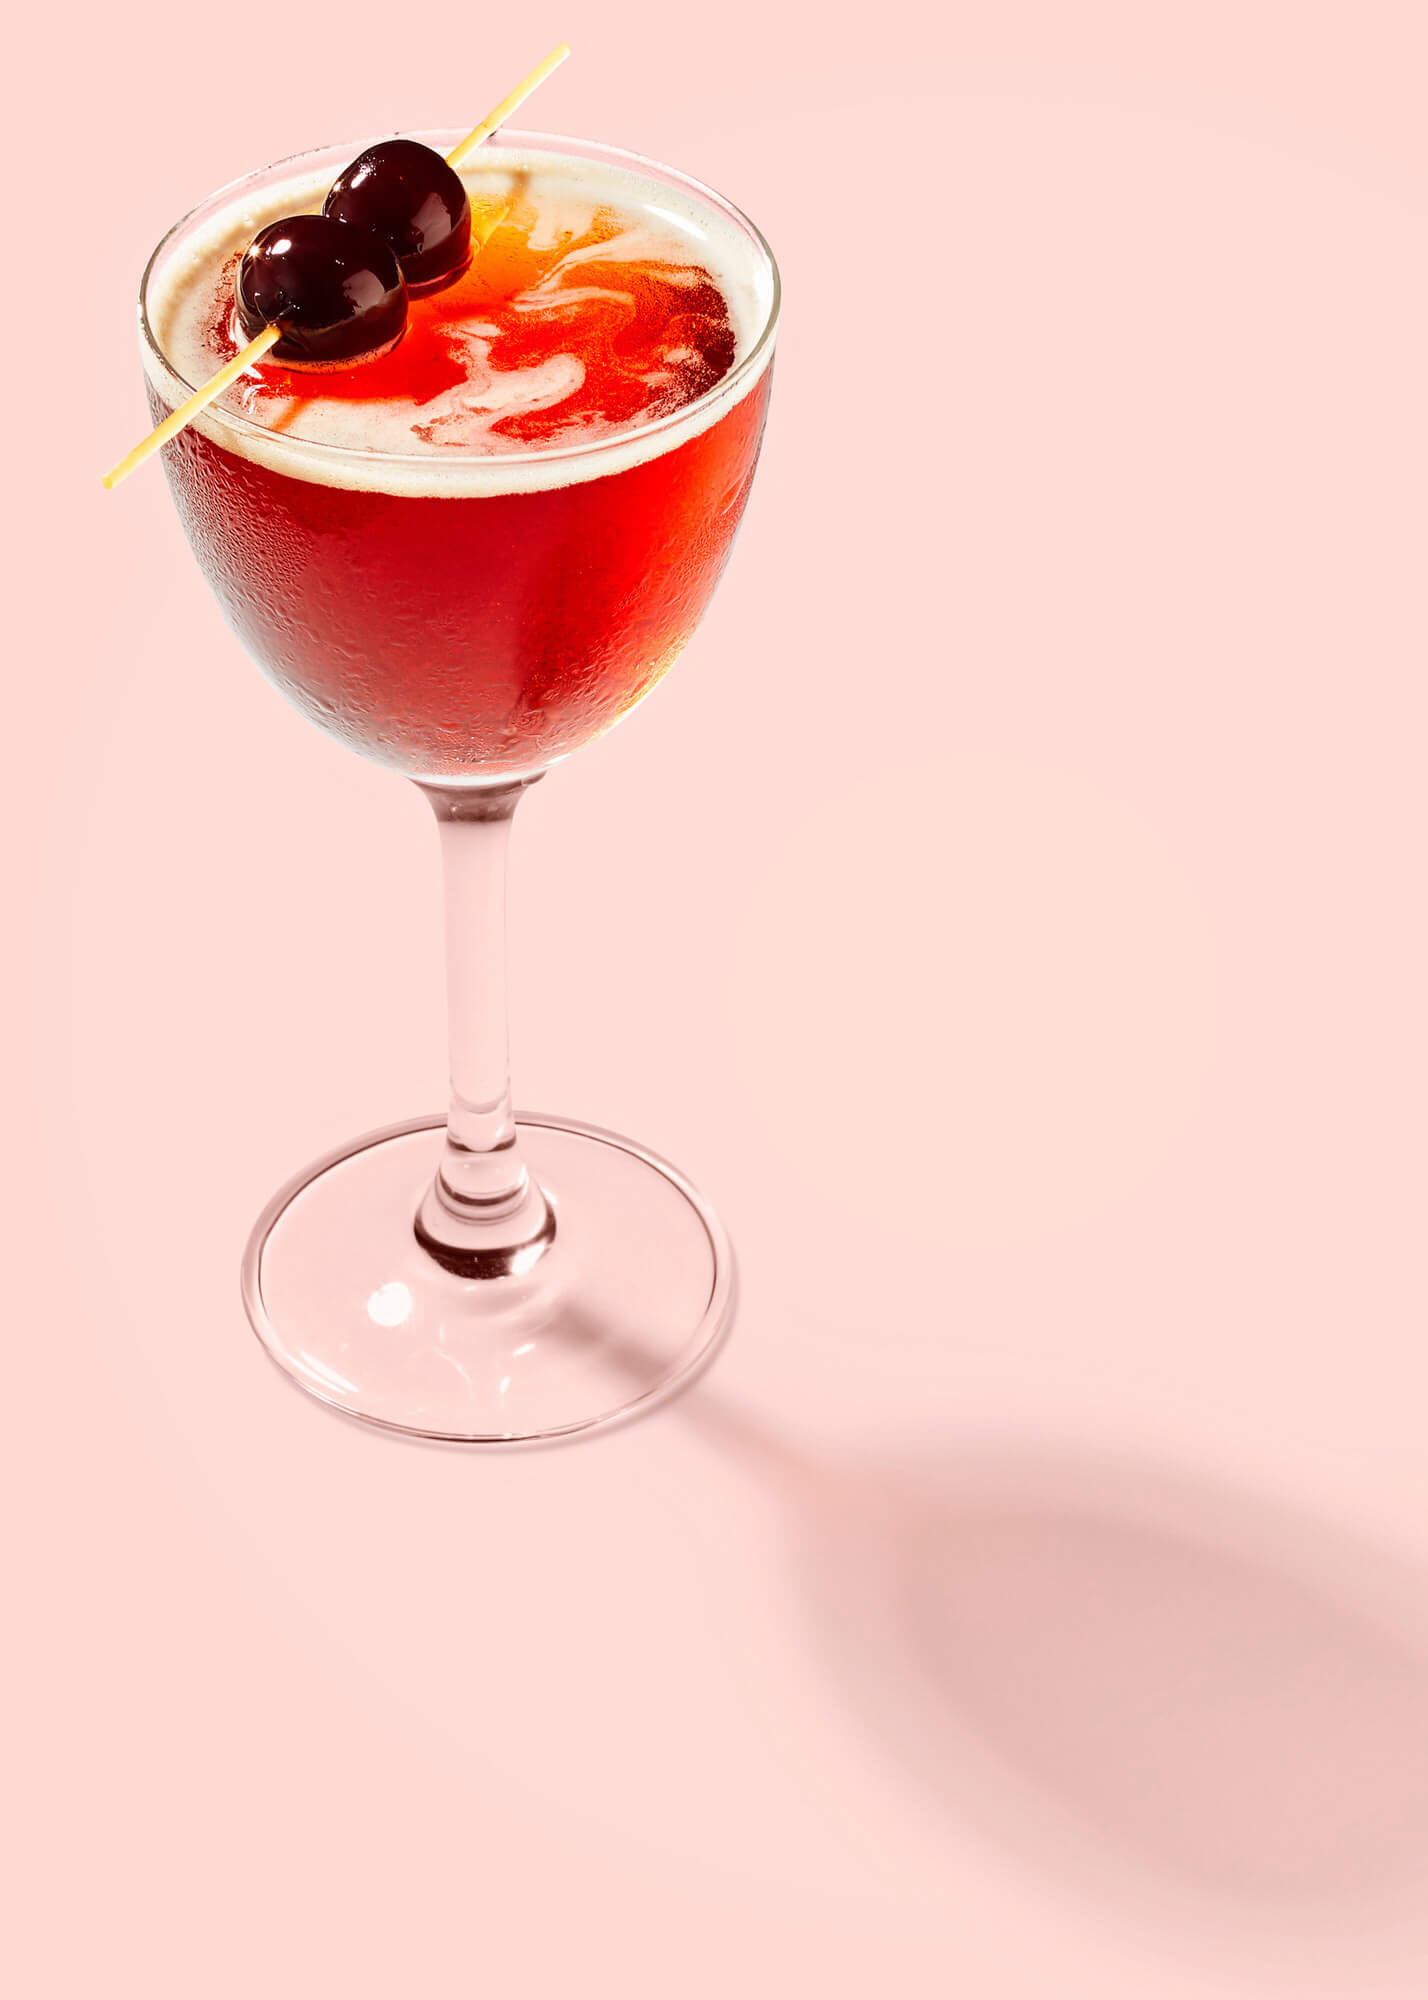 Manhattan cocktail with cherries